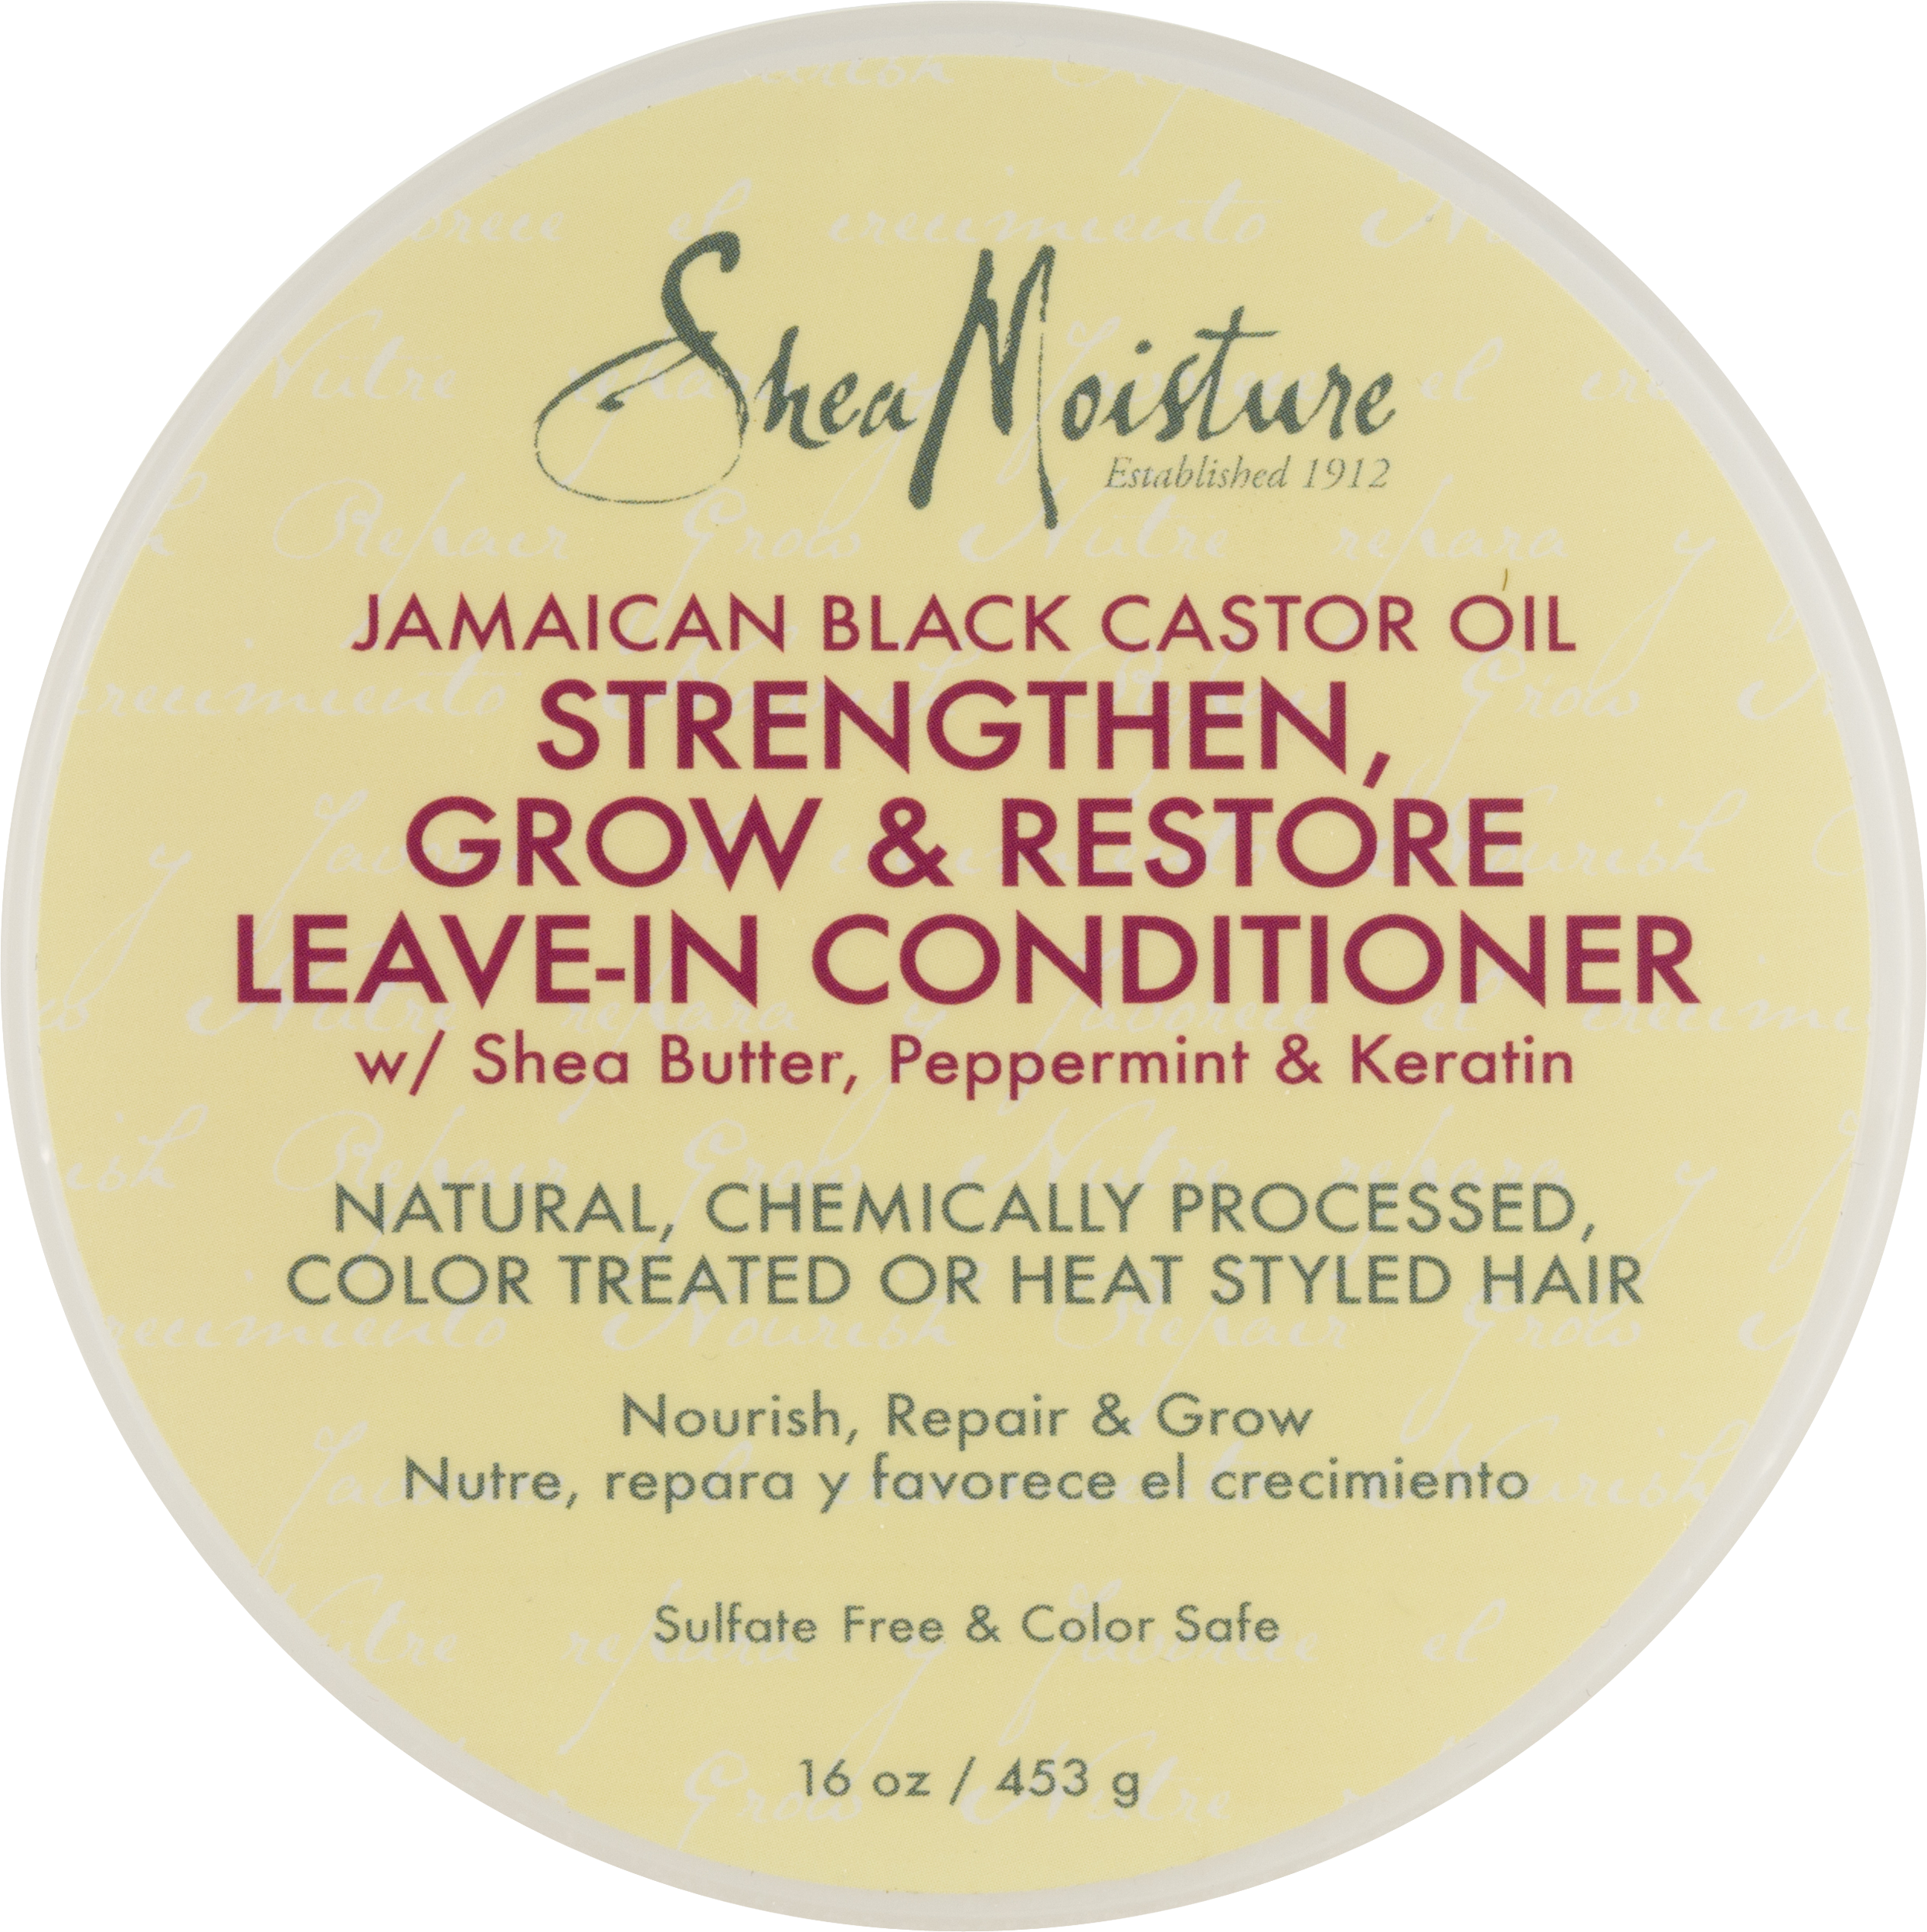 Theme of the day jamaican black castor oil for hair growth - Shea Moisture Jamaican Black Castor Oil Strengthen Grow Restore Leave In Conditioner 16 0 Oz Walmart Com